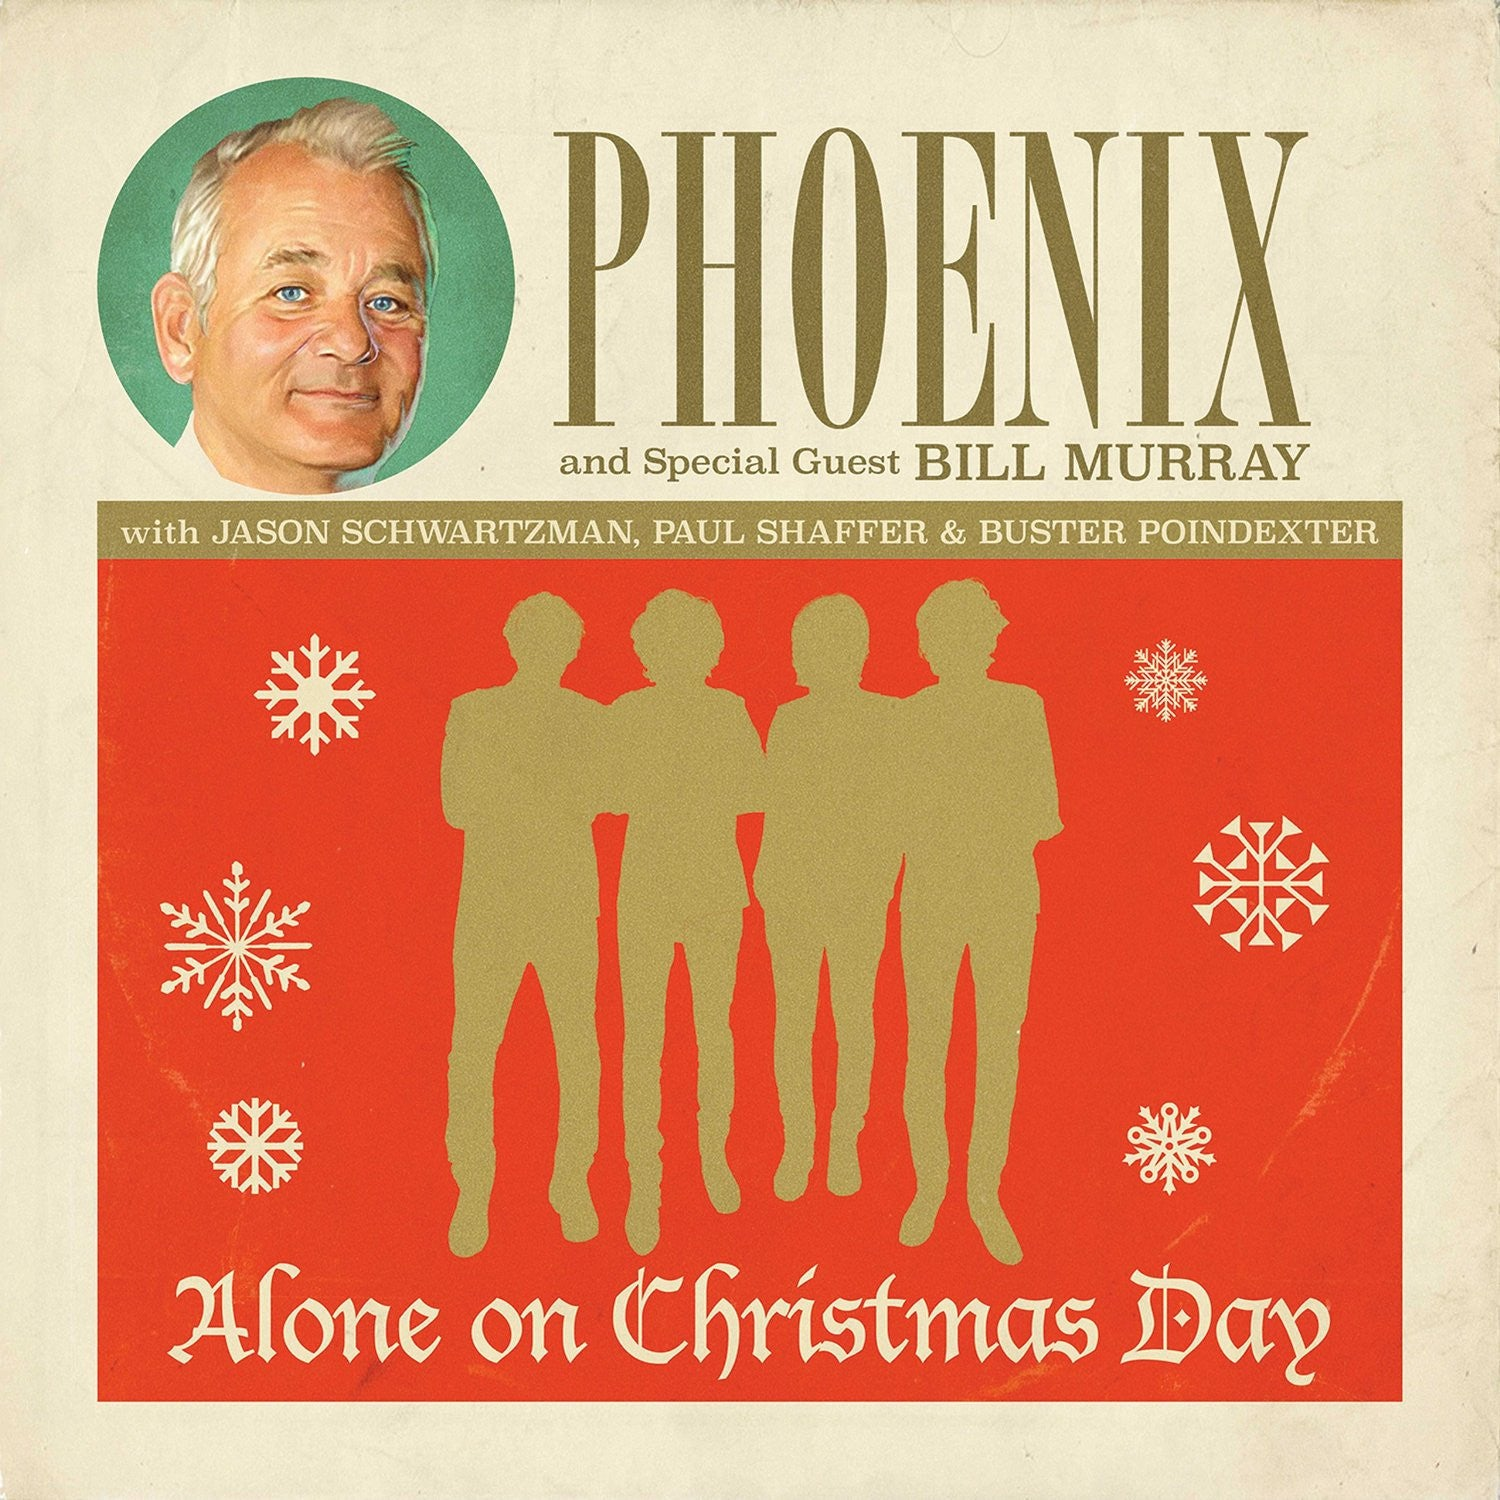 "Phoenix And Special Guest Bill Murray With Jason Schwartzman, Paul Shaffer & Buster Poindexter ‎– Alone On Christmas Day - New 7"" Single Record 2015 USA Vinyl - Holiday / Pop / Ballad Vocal"